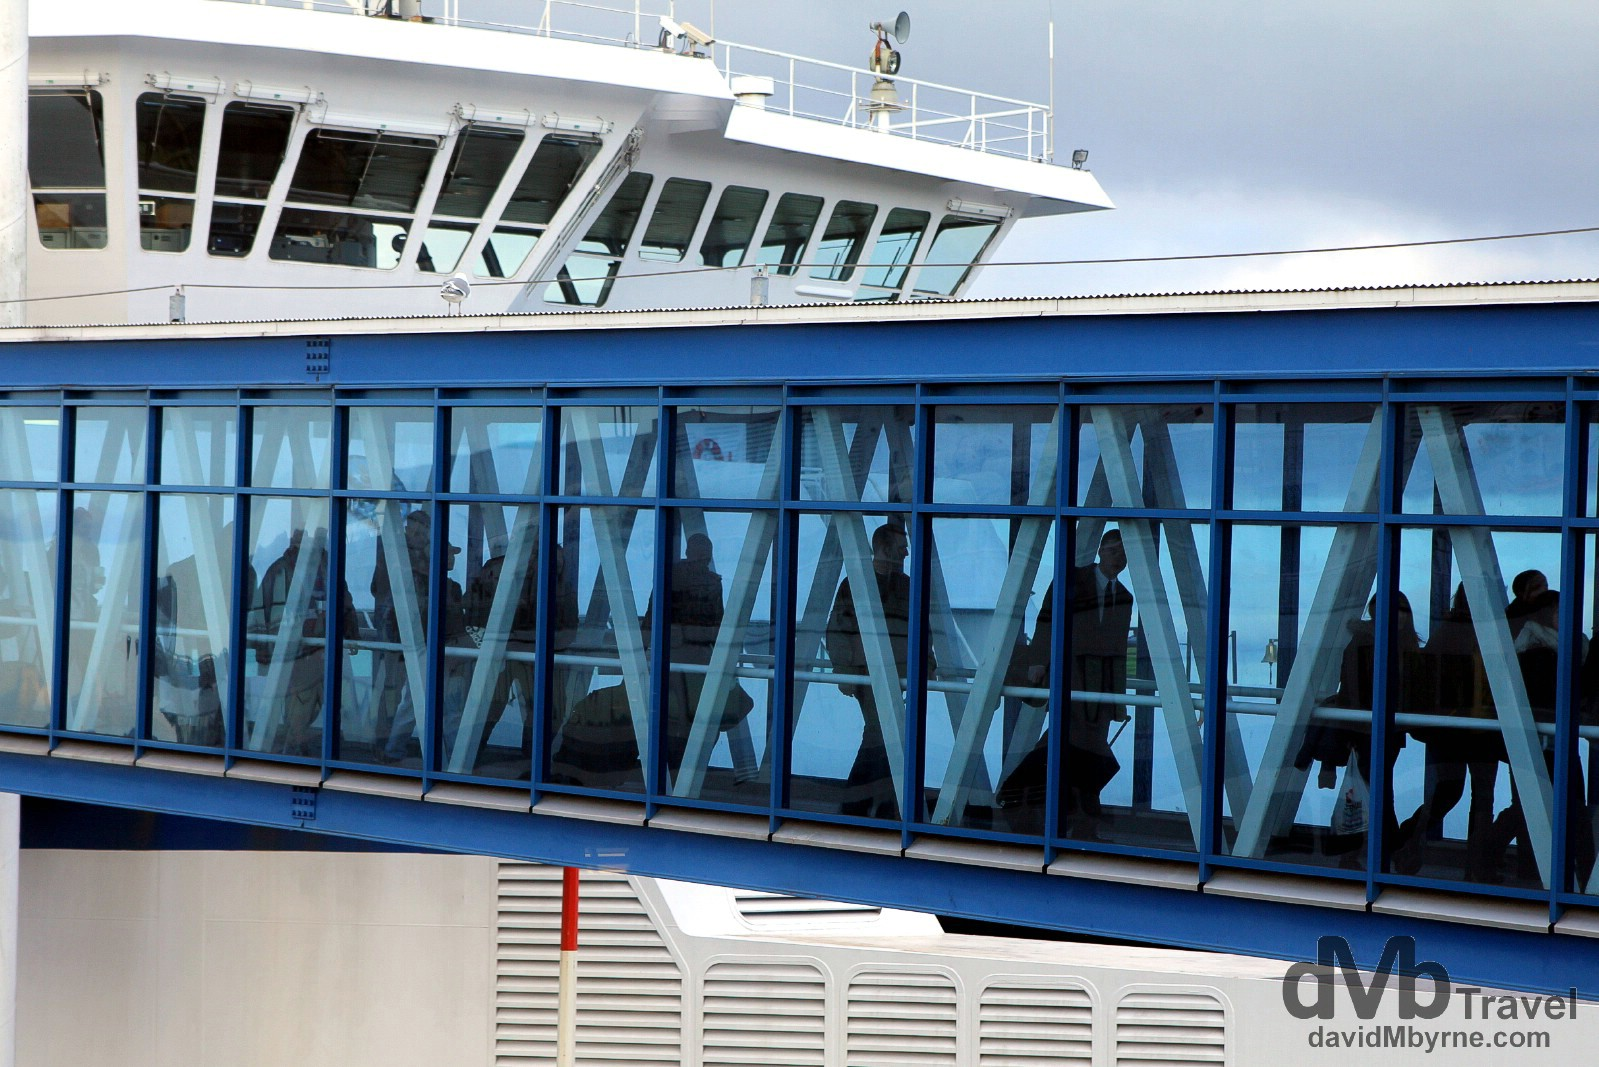 Disembarking BC Ferries at Tsawwassen Ferry Terminal, British Columbia, Canada. March 22nd 2013.